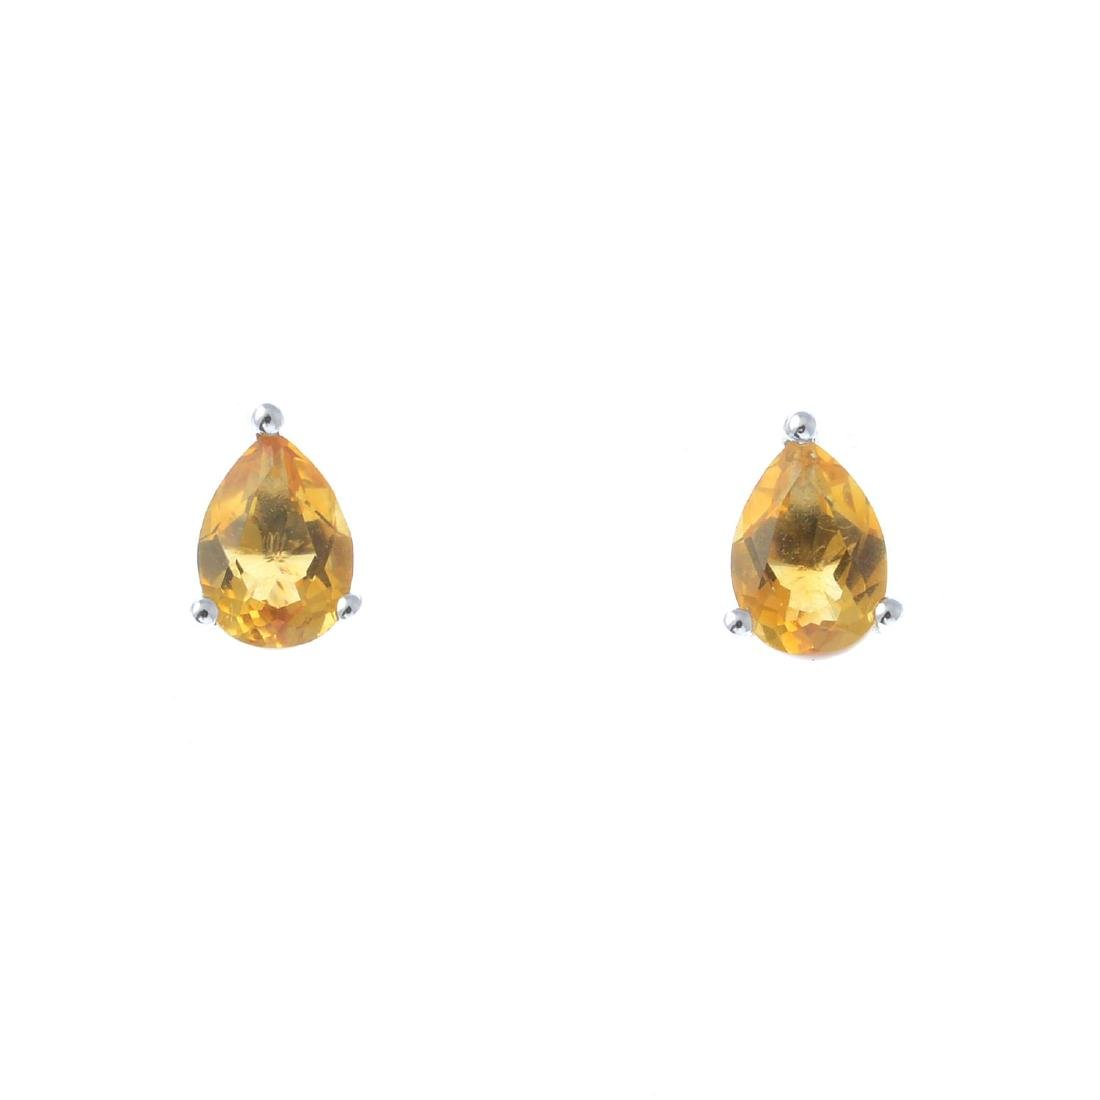 A pair of 9ct gold pear-shape citrine single-stone stud